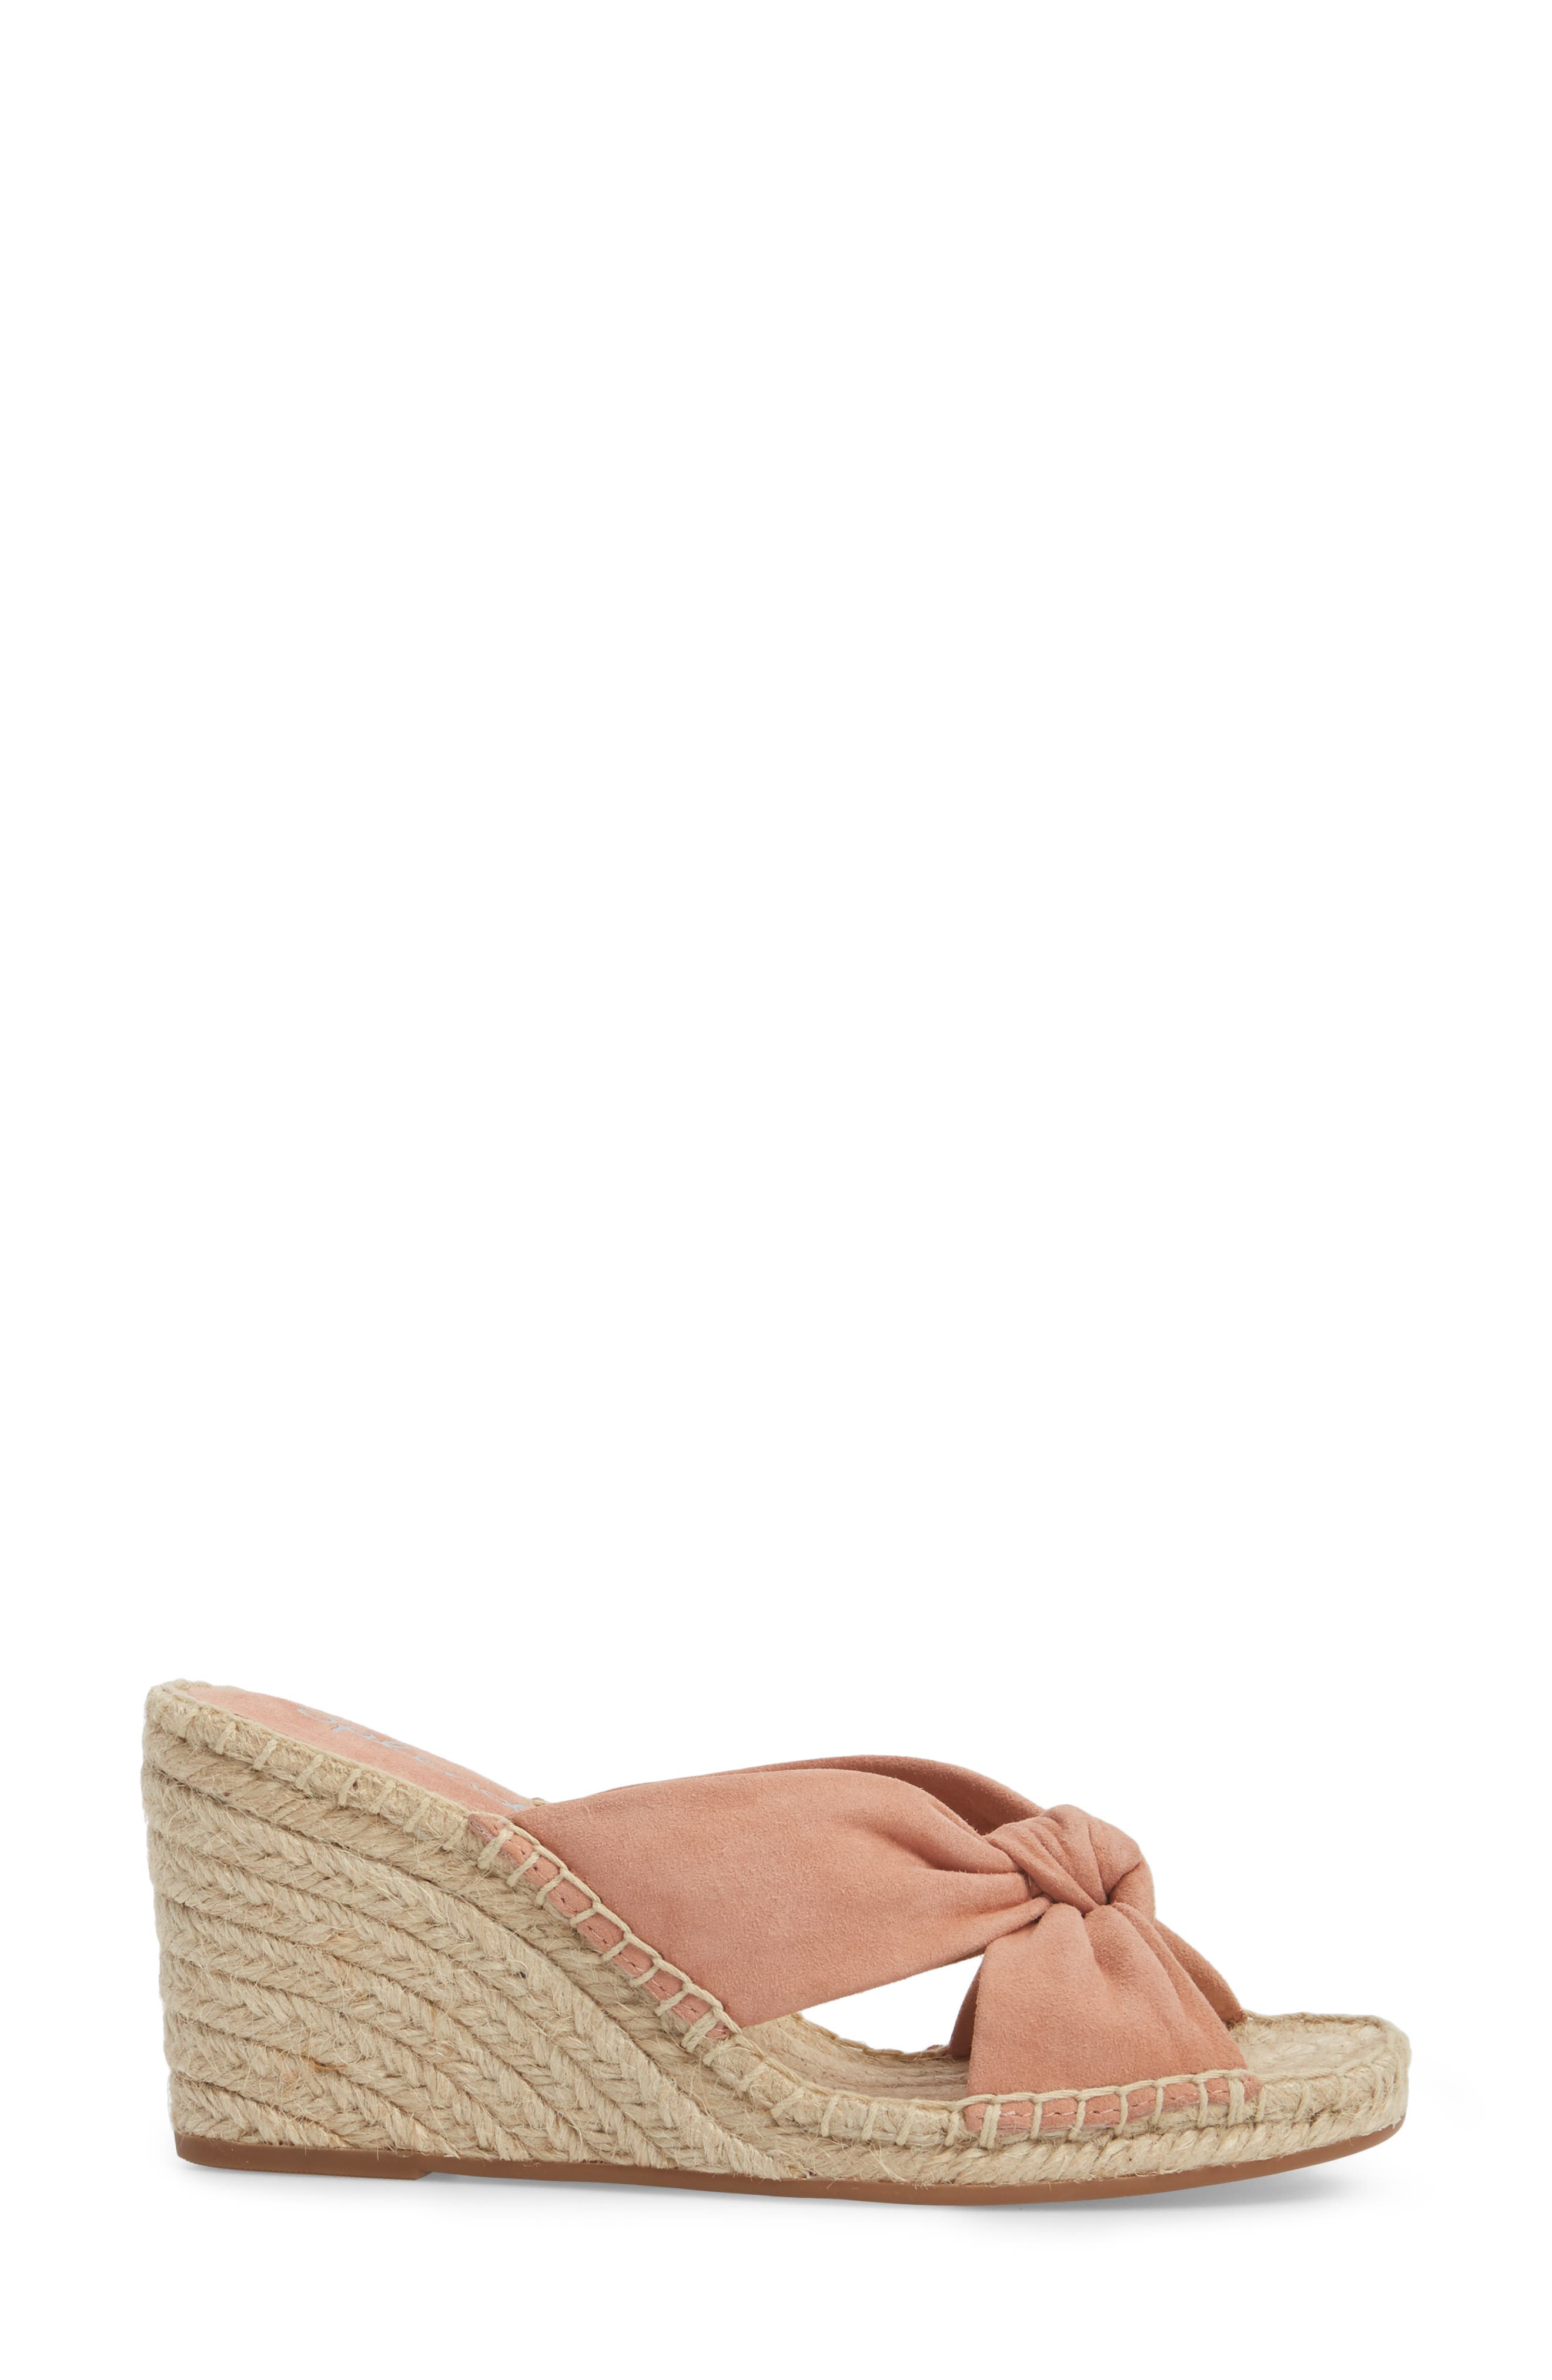 Bautista Knotted Wedge Sandal,                             Alternate thumbnail 3, color,                             DARK BLUSH SUEDE